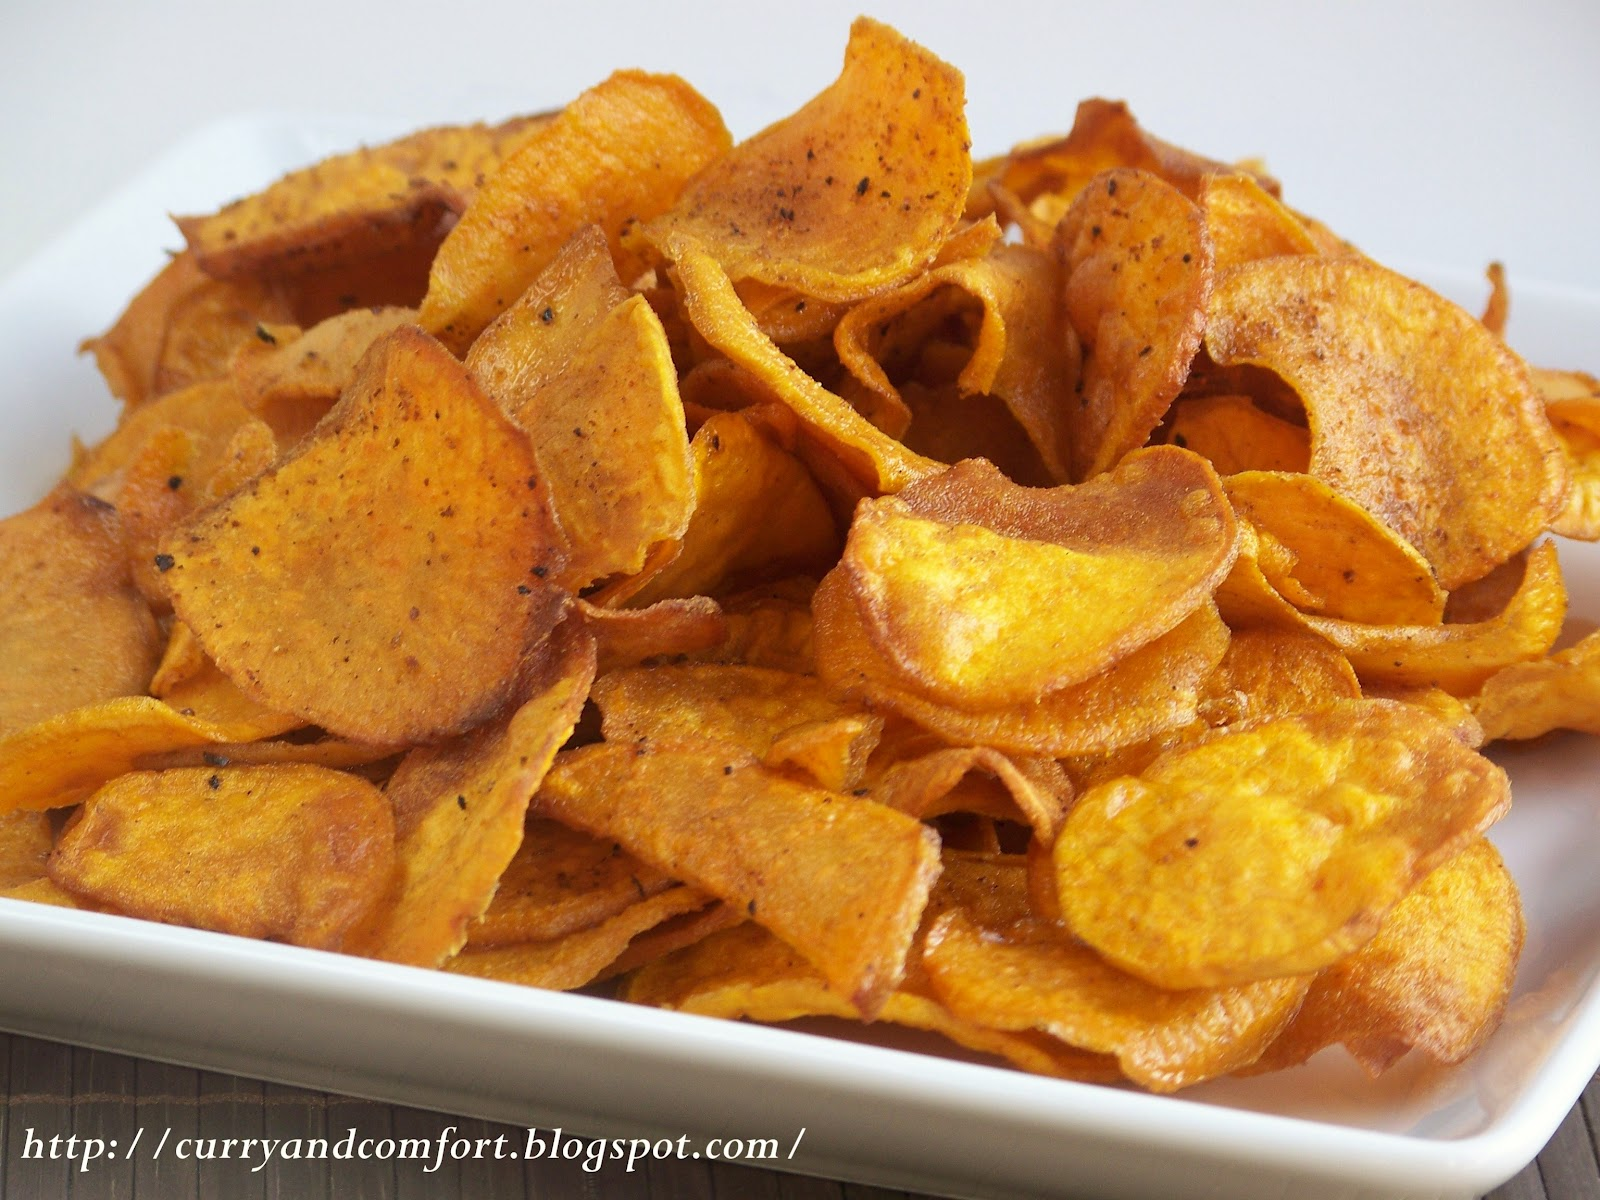 Curry and Comfort: Spicy Sweet Potato Chips